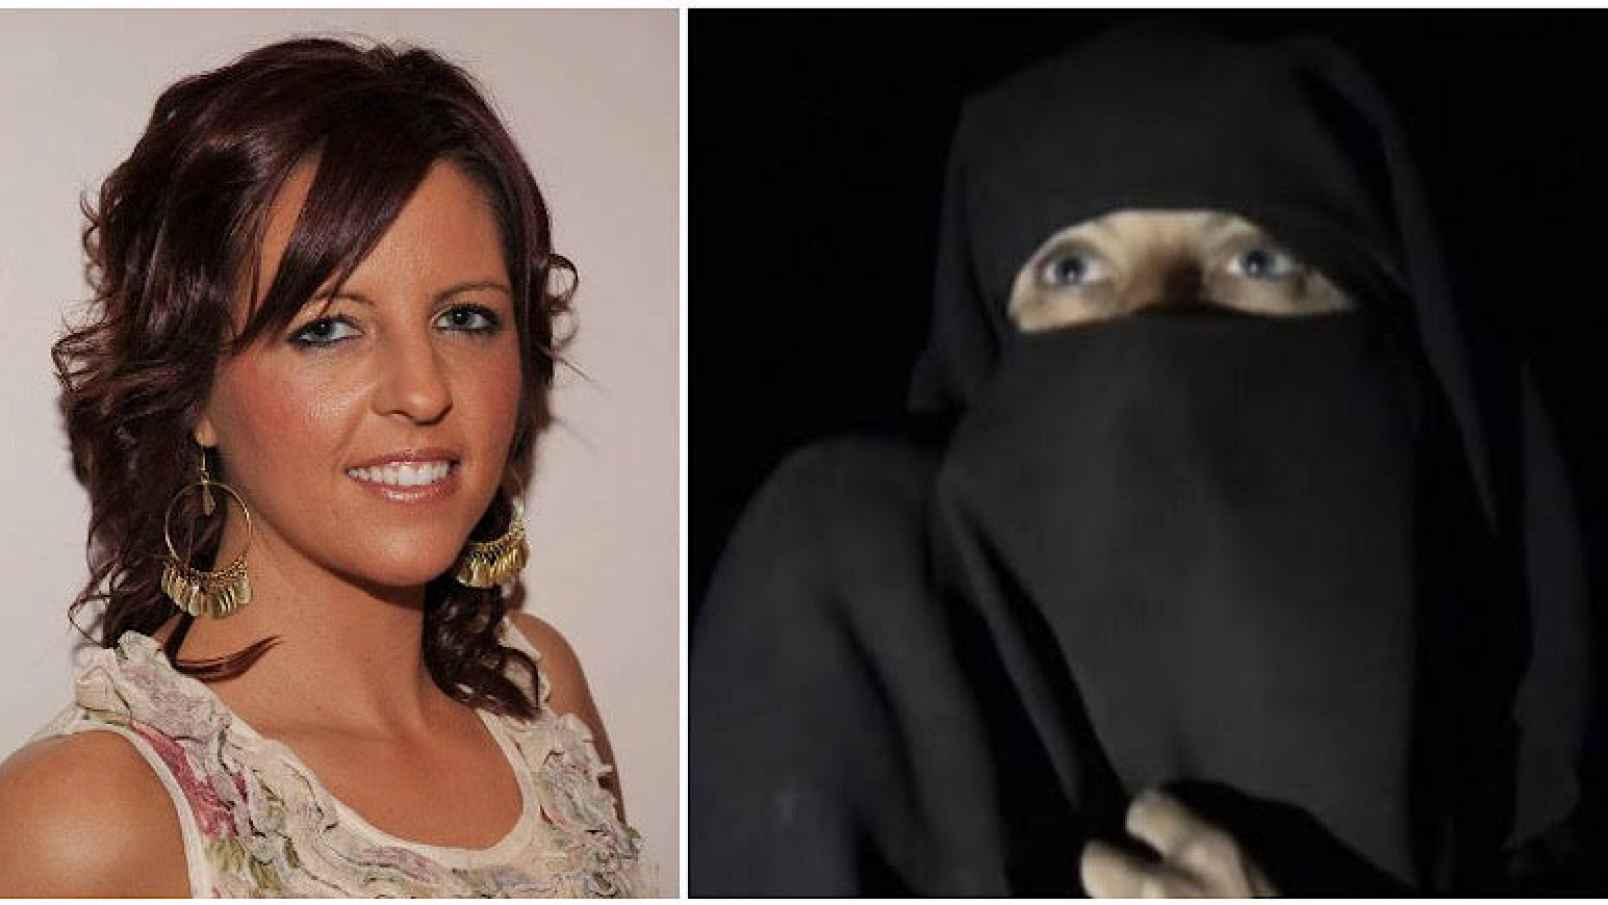 Ireland Sending Military to Syria to Bring Back Islamic State Bride - The Washington Standard